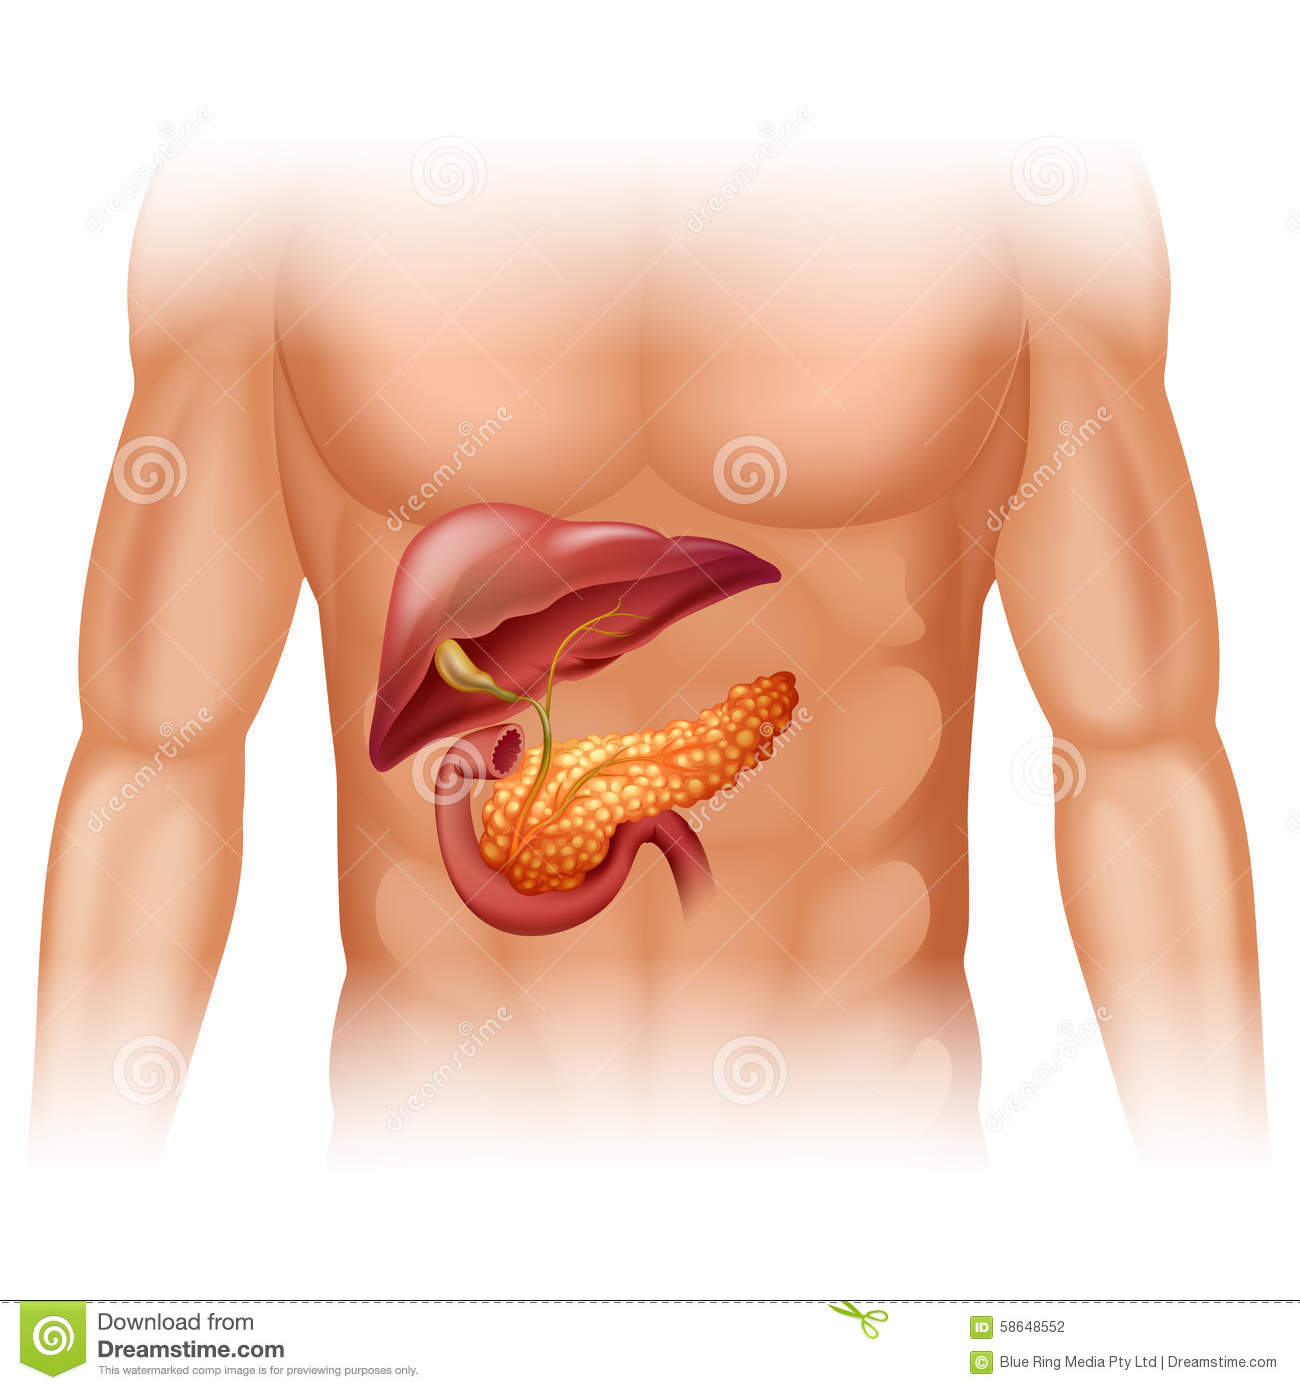 Pancreas Cancer Diagram In Detail Stock Vector Illustration Of